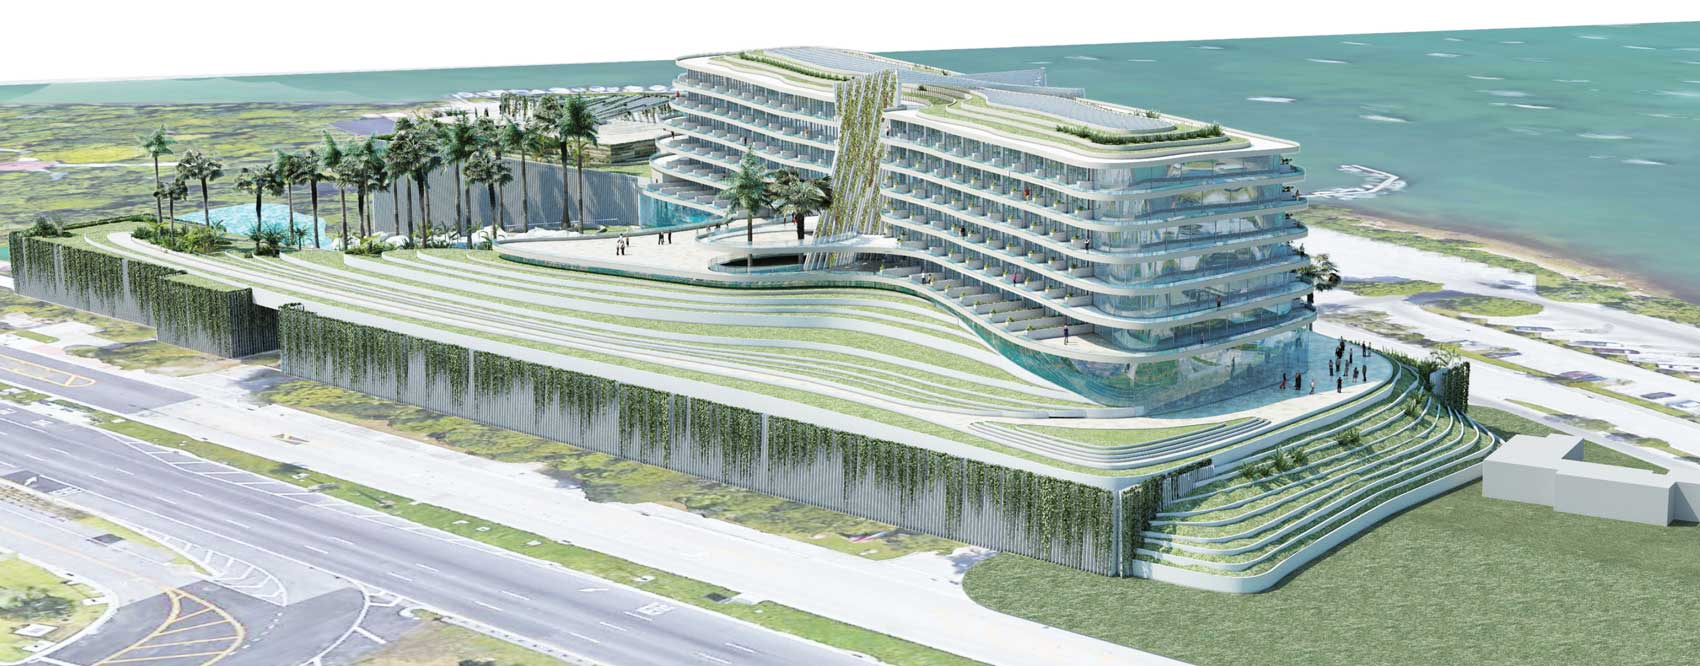 Voters get last word on Jungle Island hotel, lease extension